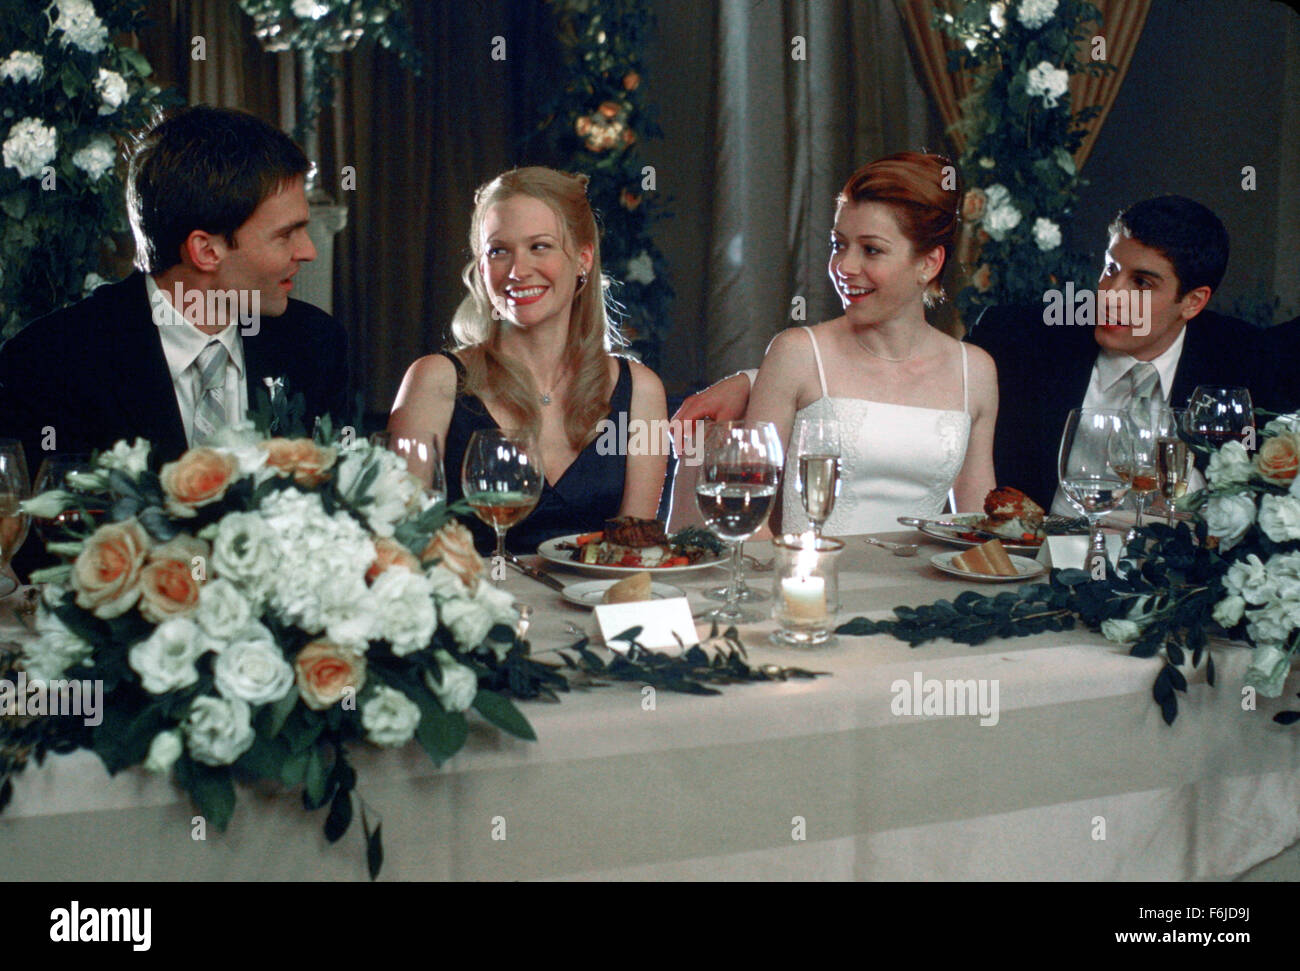 American Wedding Full Movie.Release Date July 24 2003 Movie Title American Wedding Studio